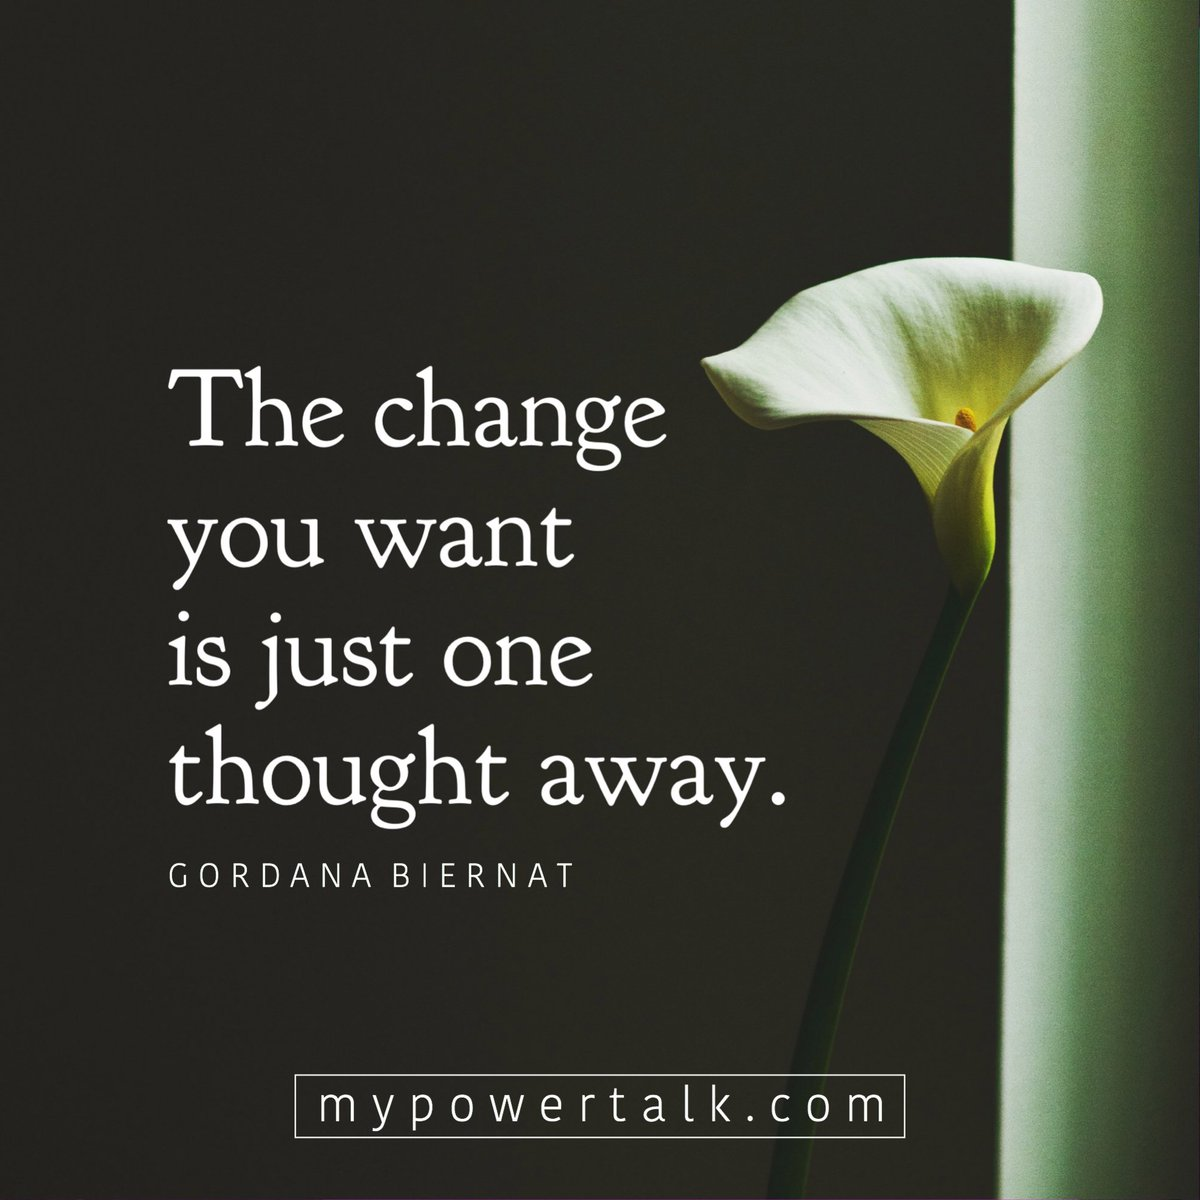 The #change you want is just one #thought away  via @MyPowertalk  #ThinkBIGSundayWithMarsha #InspireThemRetweetTuesday #Life #JoyTrain #IQRTG #Love  #FridayFeeling #SaturdayMotivation #SuperSoulSunday #MondayMotivation #TuesdayThoughts<br>http://pic.twitter.com/AHGlxqqTFk